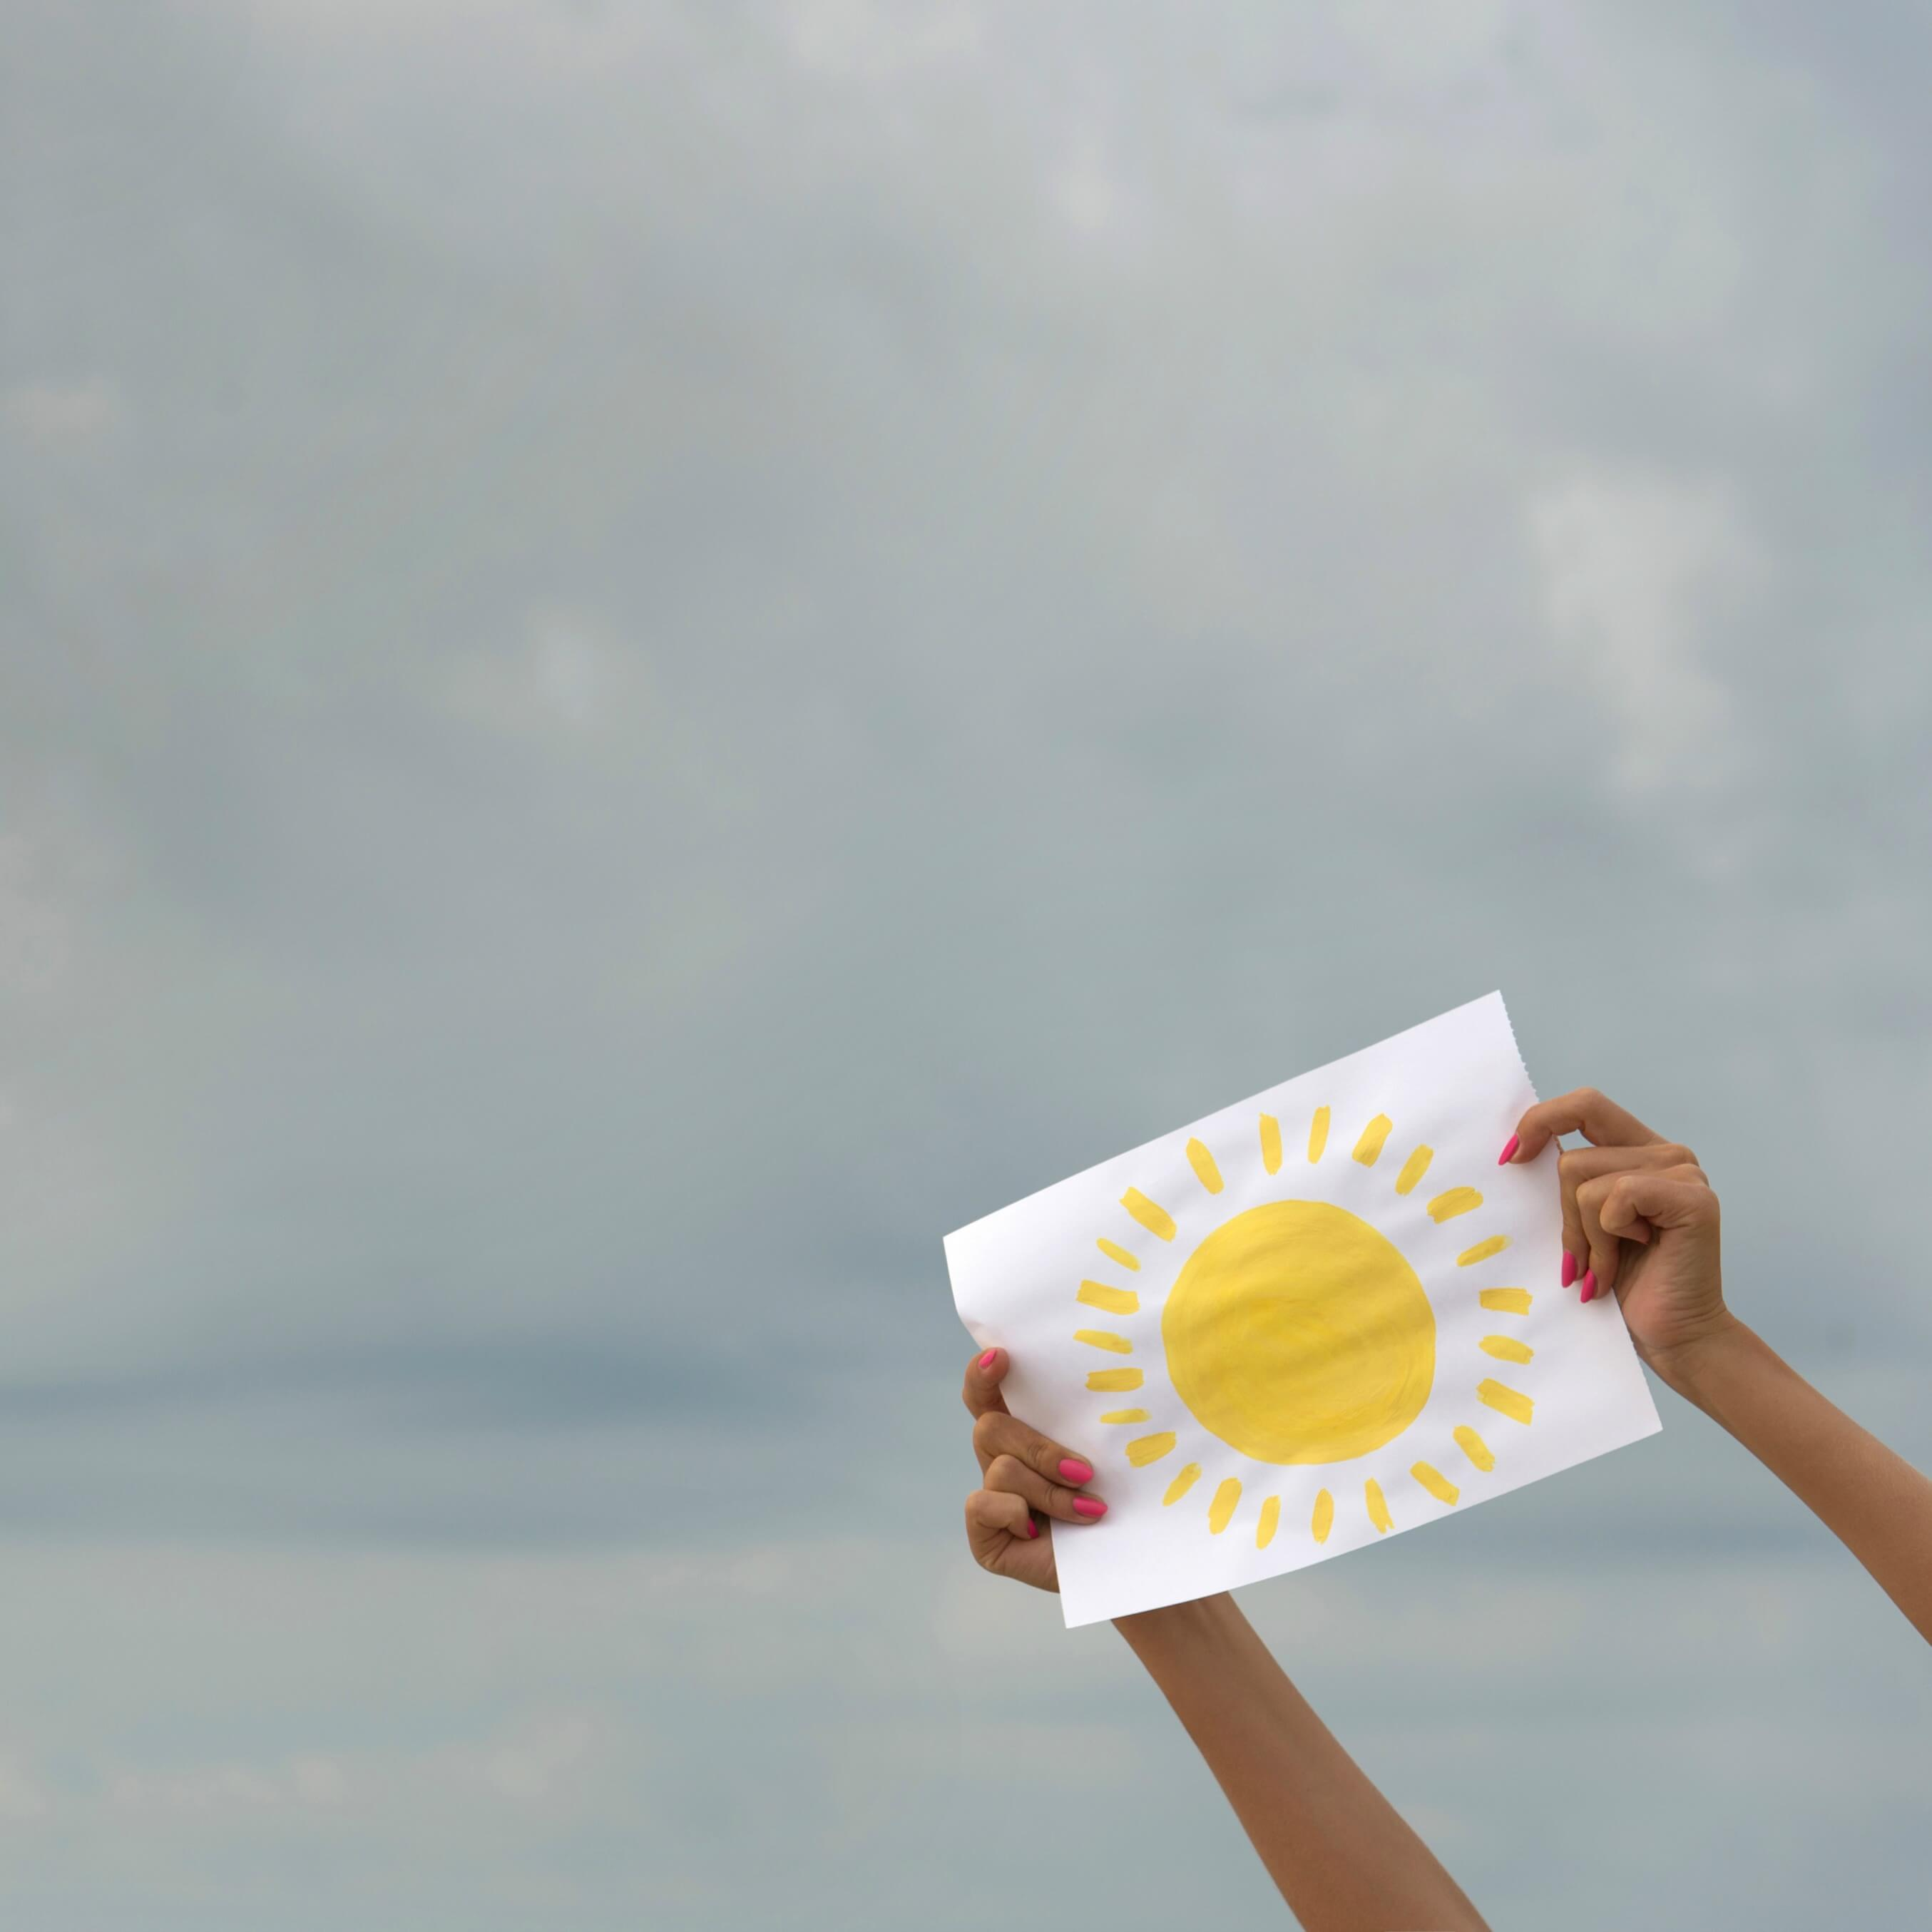 benefits of positive thinking on health - hands holding up a painted yellow sun against a grey sky